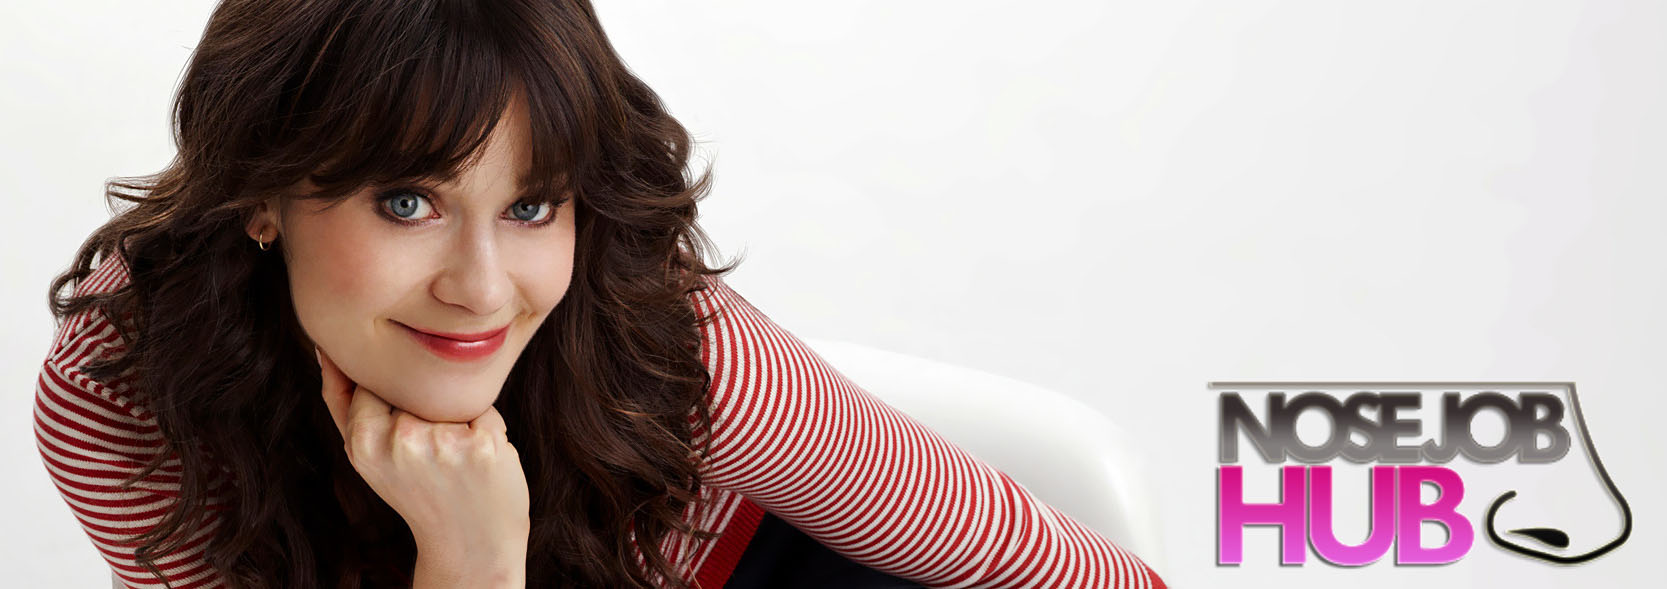 Zooey Deschanel Before and After Nose Job